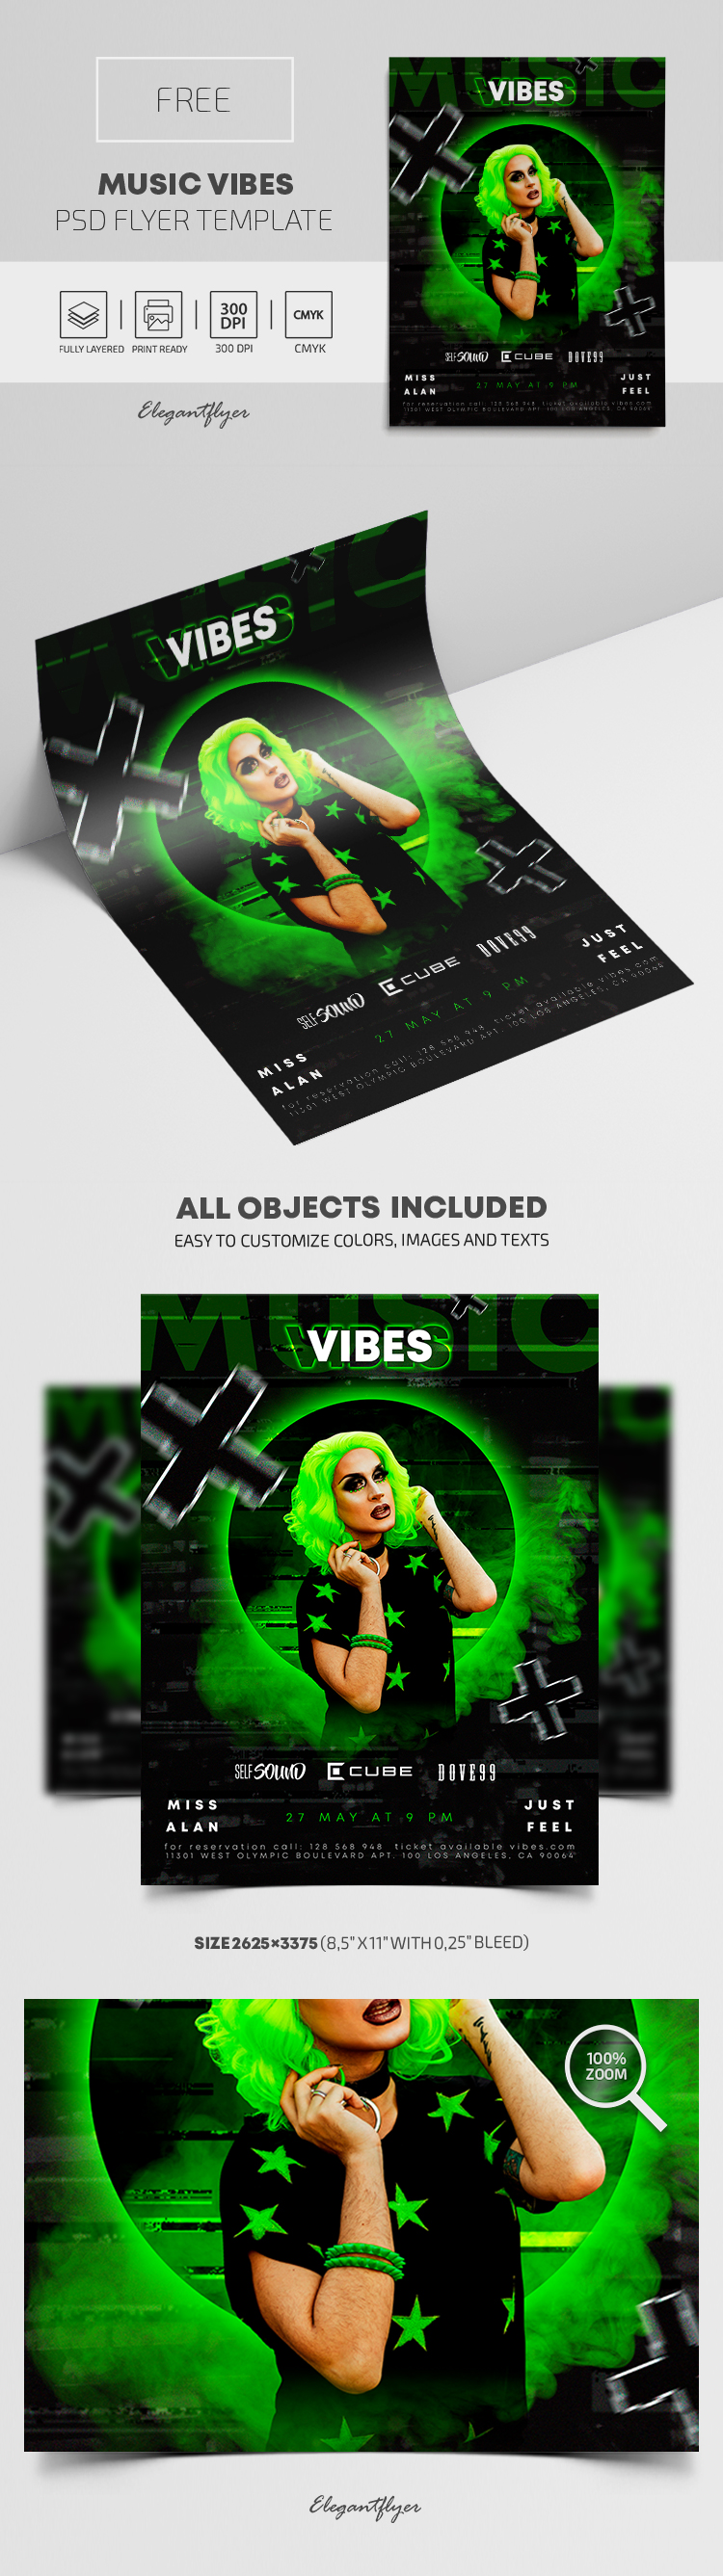 Music Vibes – Free PSD Flyer Template